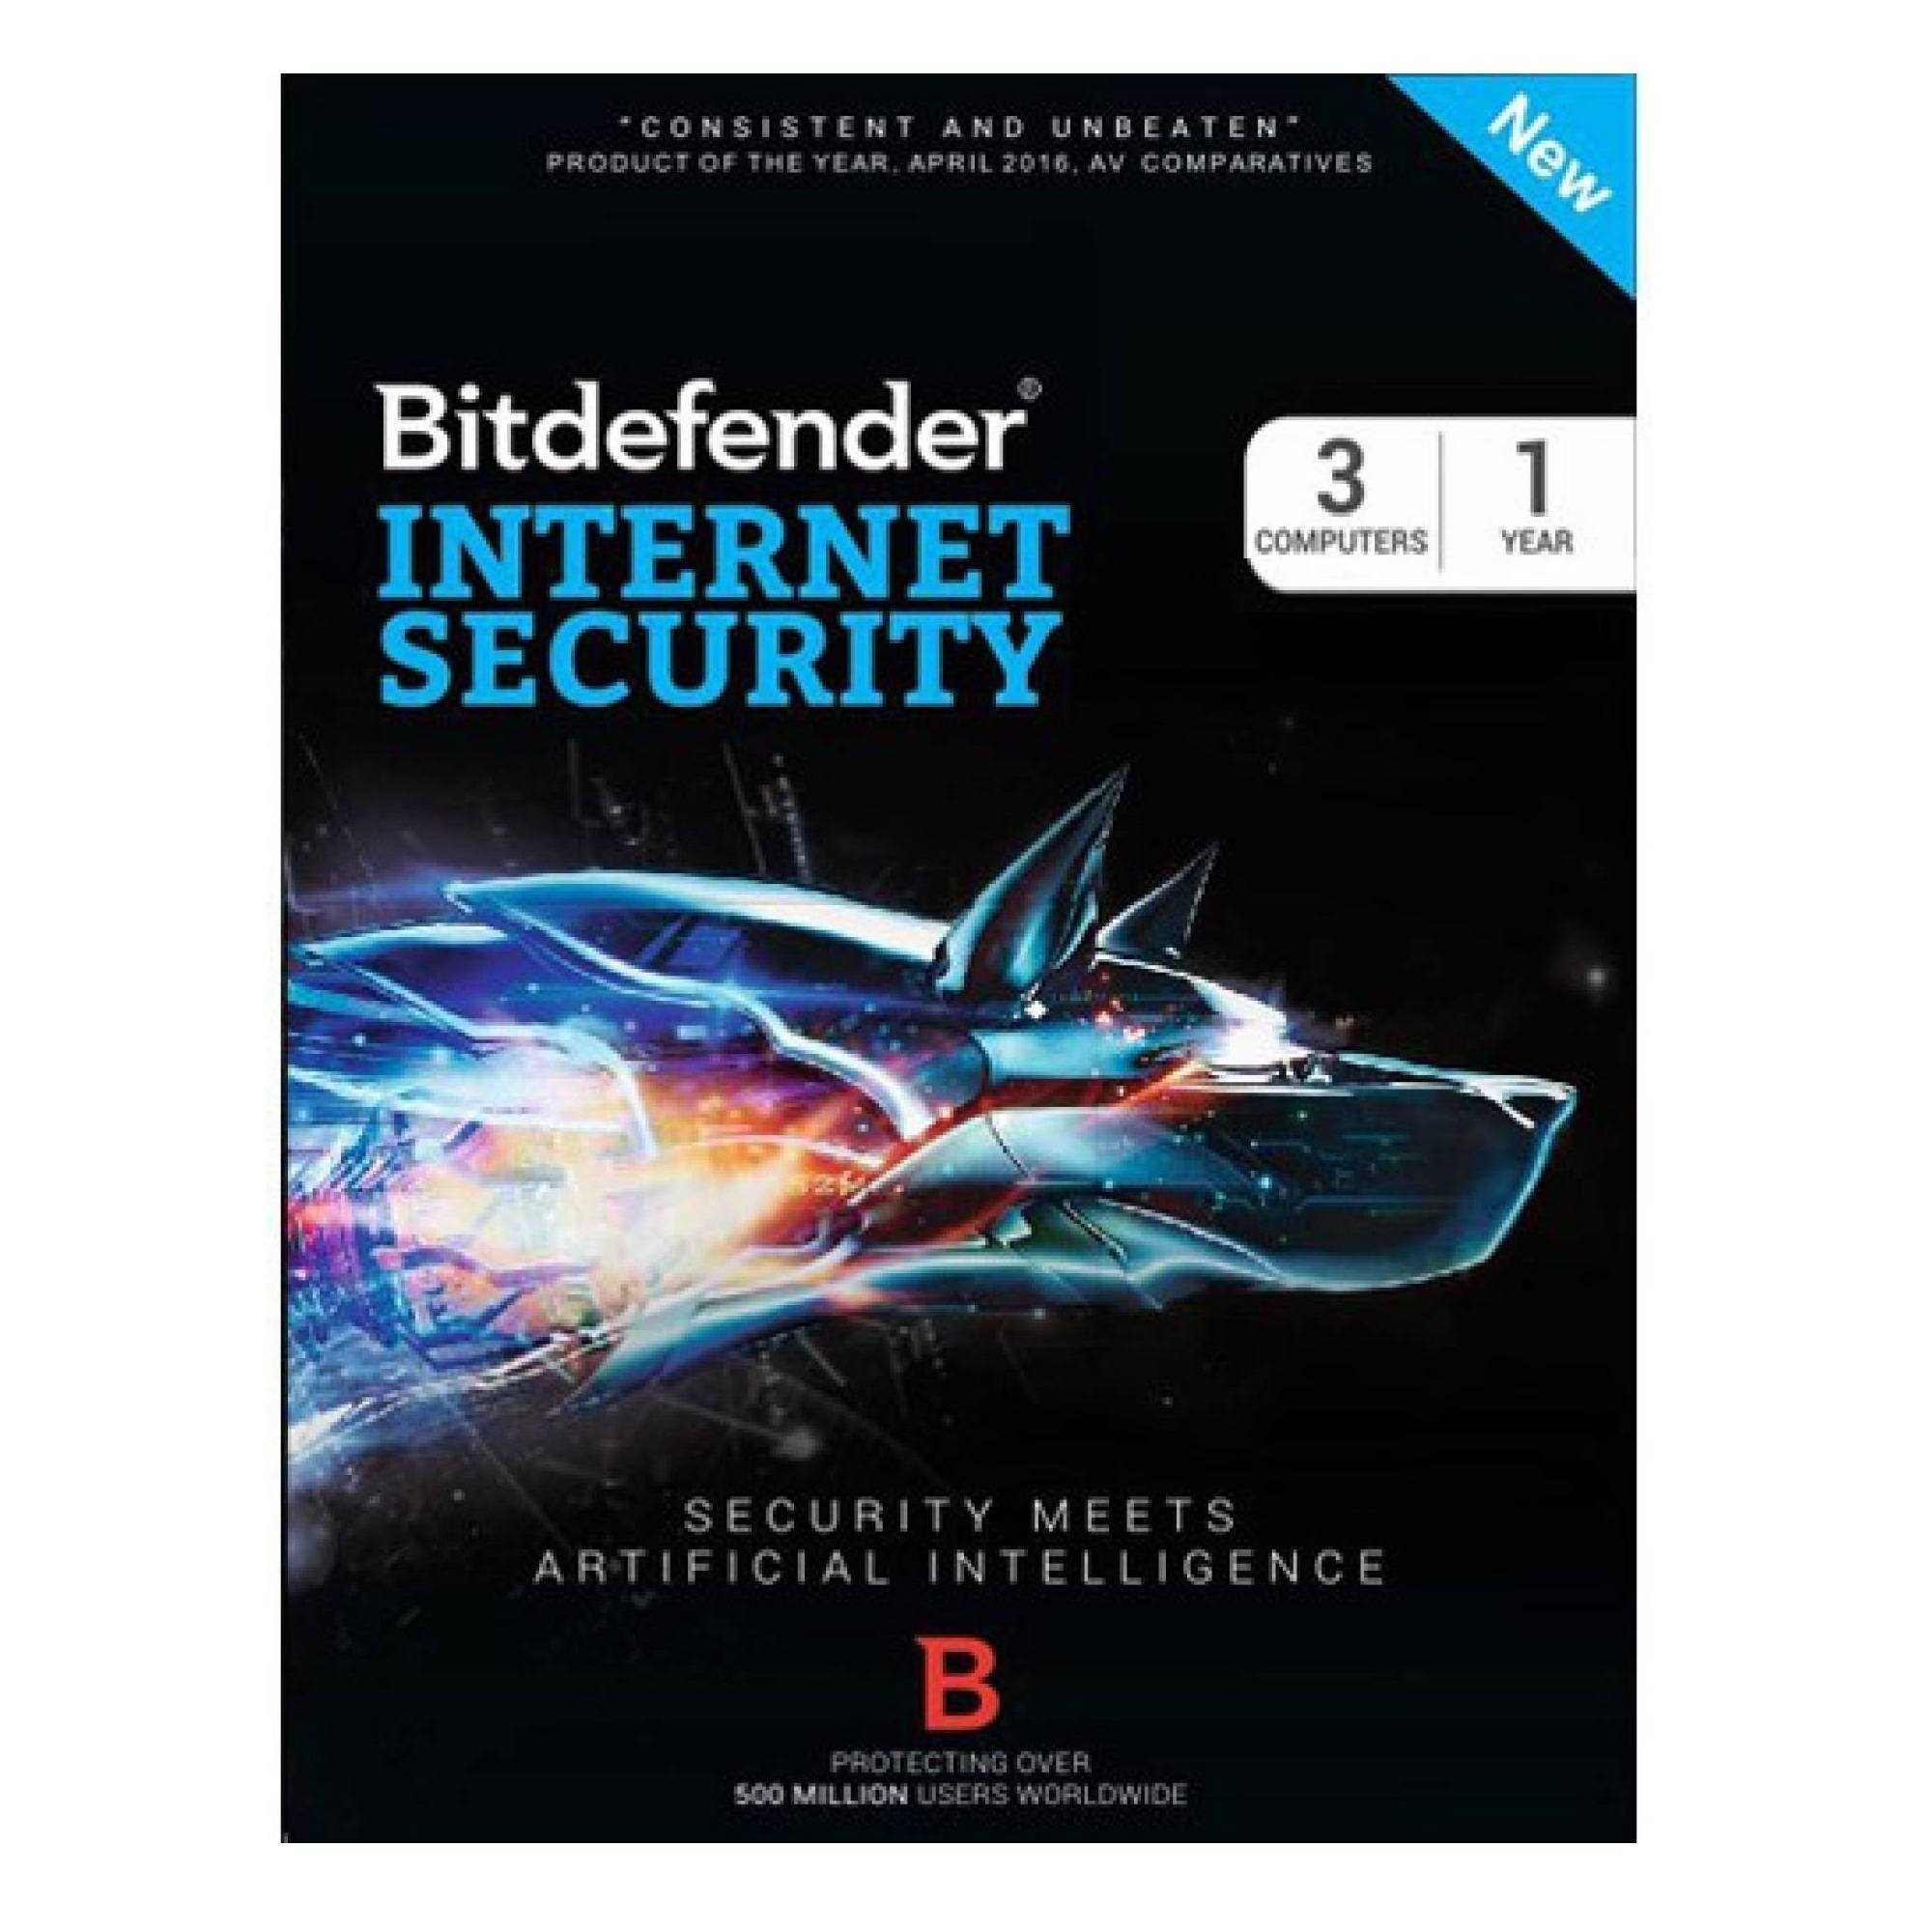 Nov 08, · Bitdefender Total Security 1 Computer 3 Years I am using since 20 days it's porformence very very well. It's auto update every one hour option very nice. I ordered , .